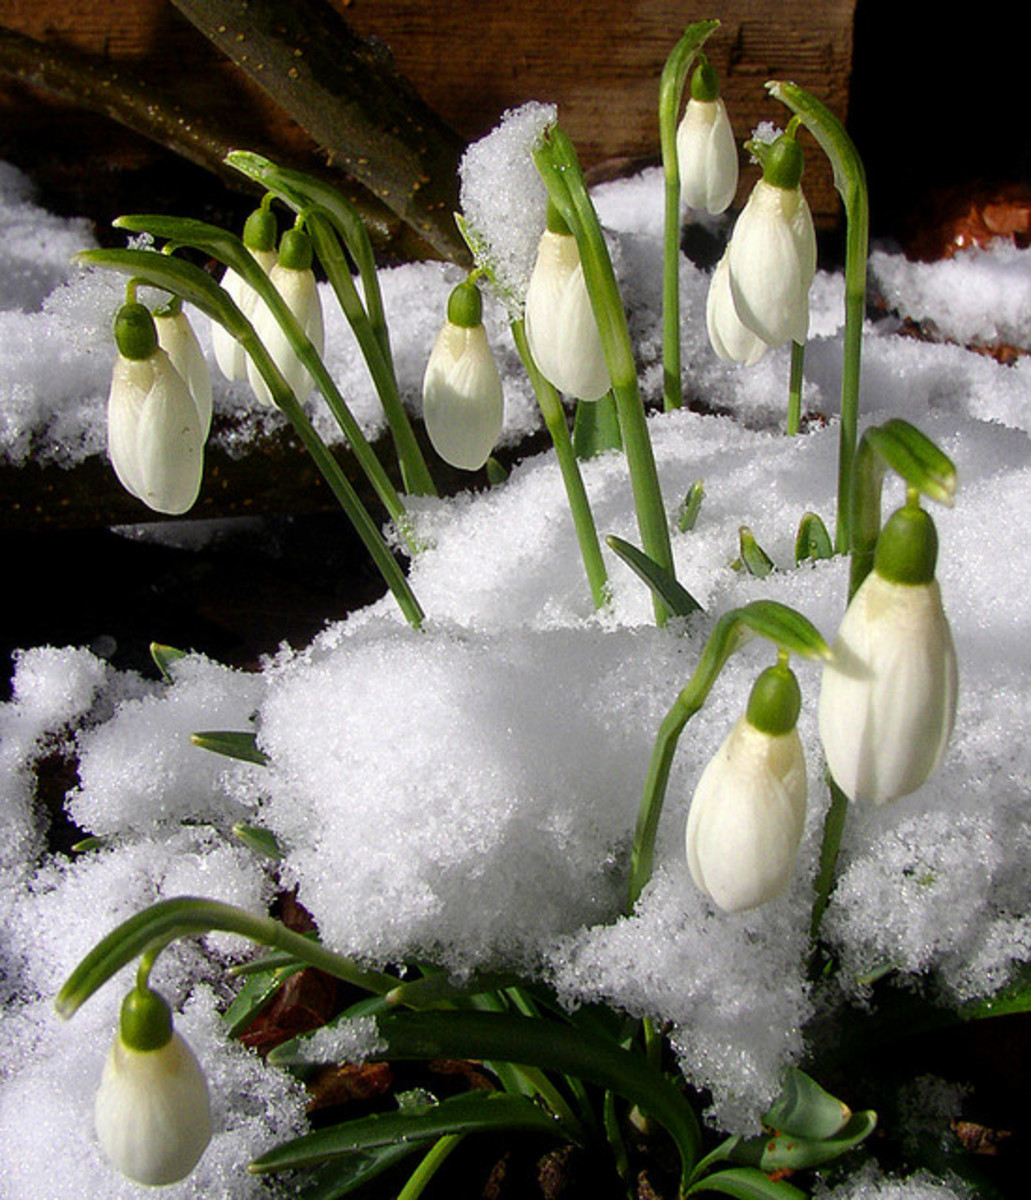 At the end of a long, cold Winter, we all look for signs of Spring. I find a sign in snowdrops, and in Groundhog Day. Where do you see Spring springing up?